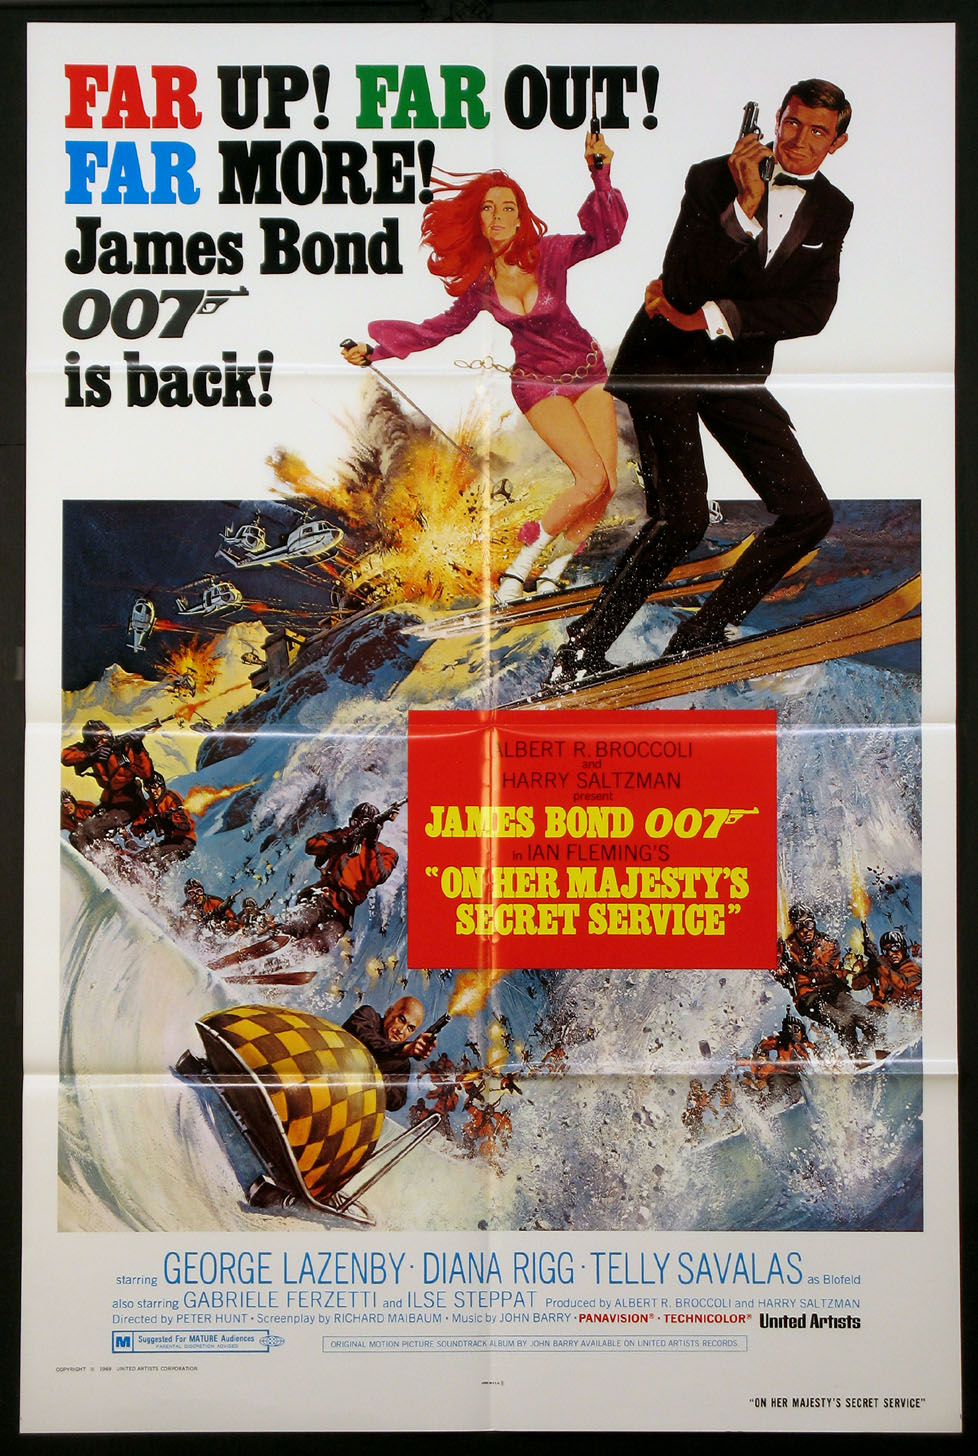 ON HER MAJESTY'S SECRET SERVICE (James Bond series) @ FilmPosters.com